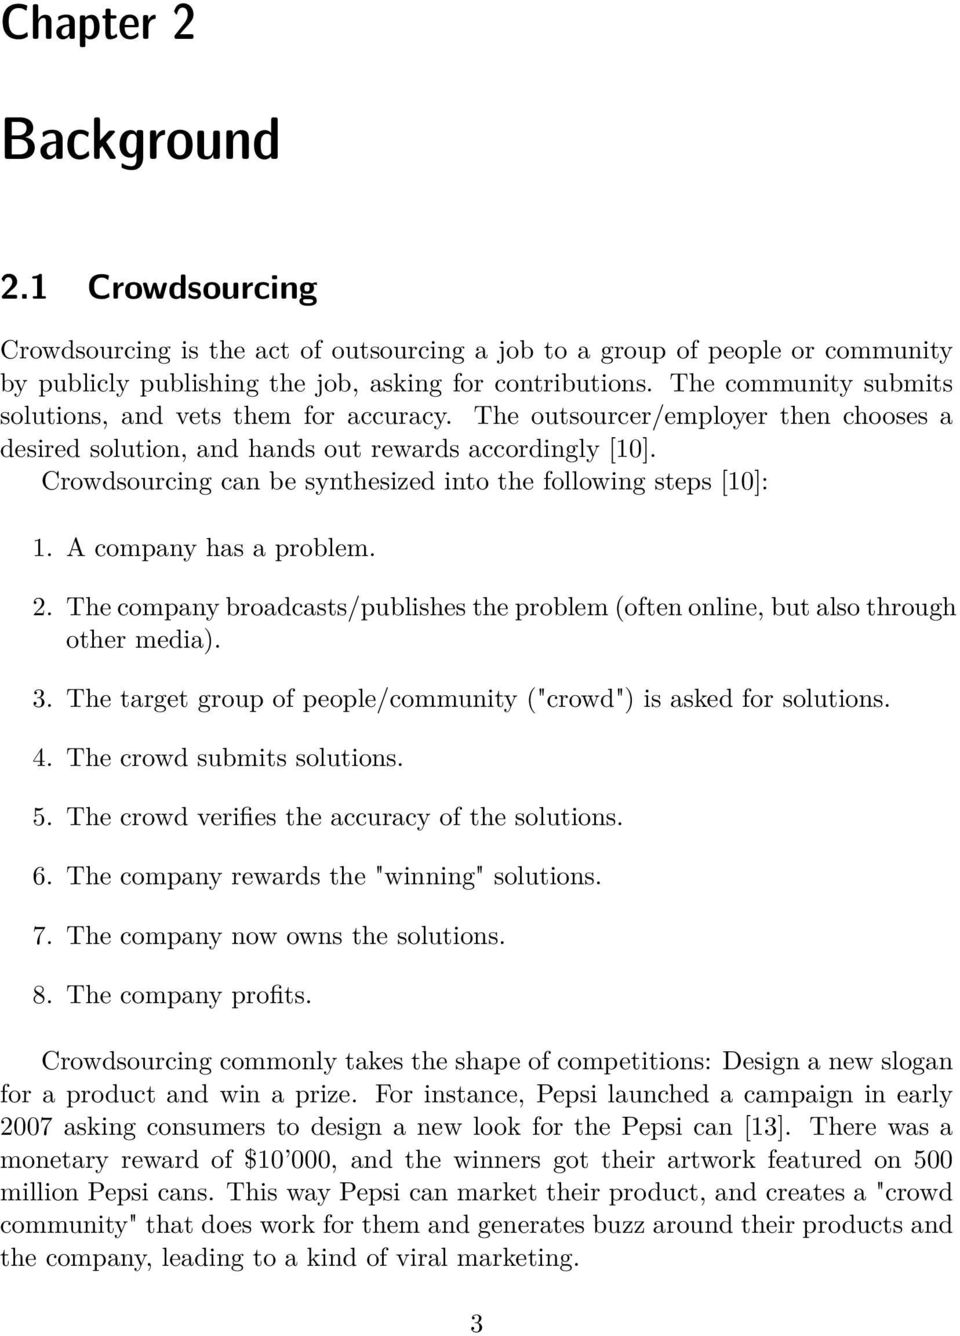 Crowdsourcing can be synthesized into the following steps [10]: 1. A company has a problem. 2. The company broadcasts/publishes the problem (often online, but also through other media). 3.